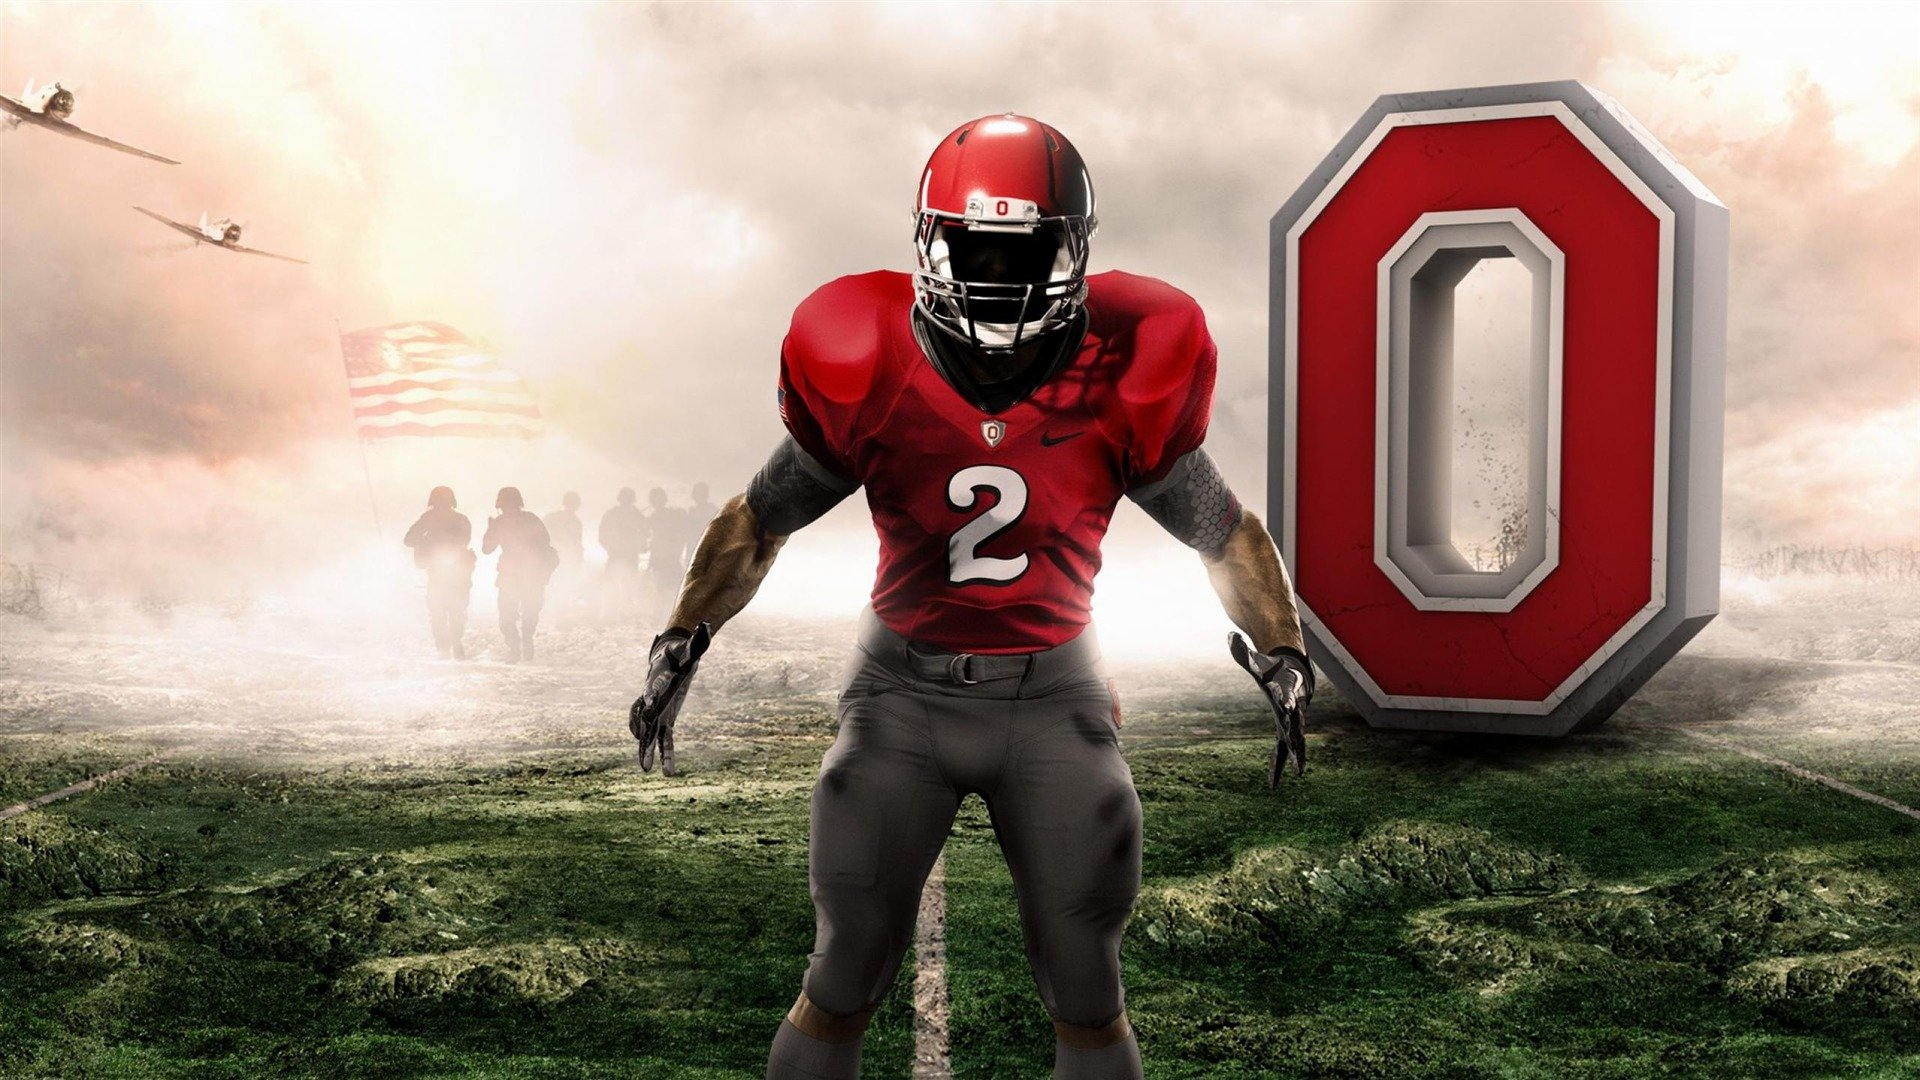 OHIO STATE BUCKEYES college football 11 wallpaper 1920x1080